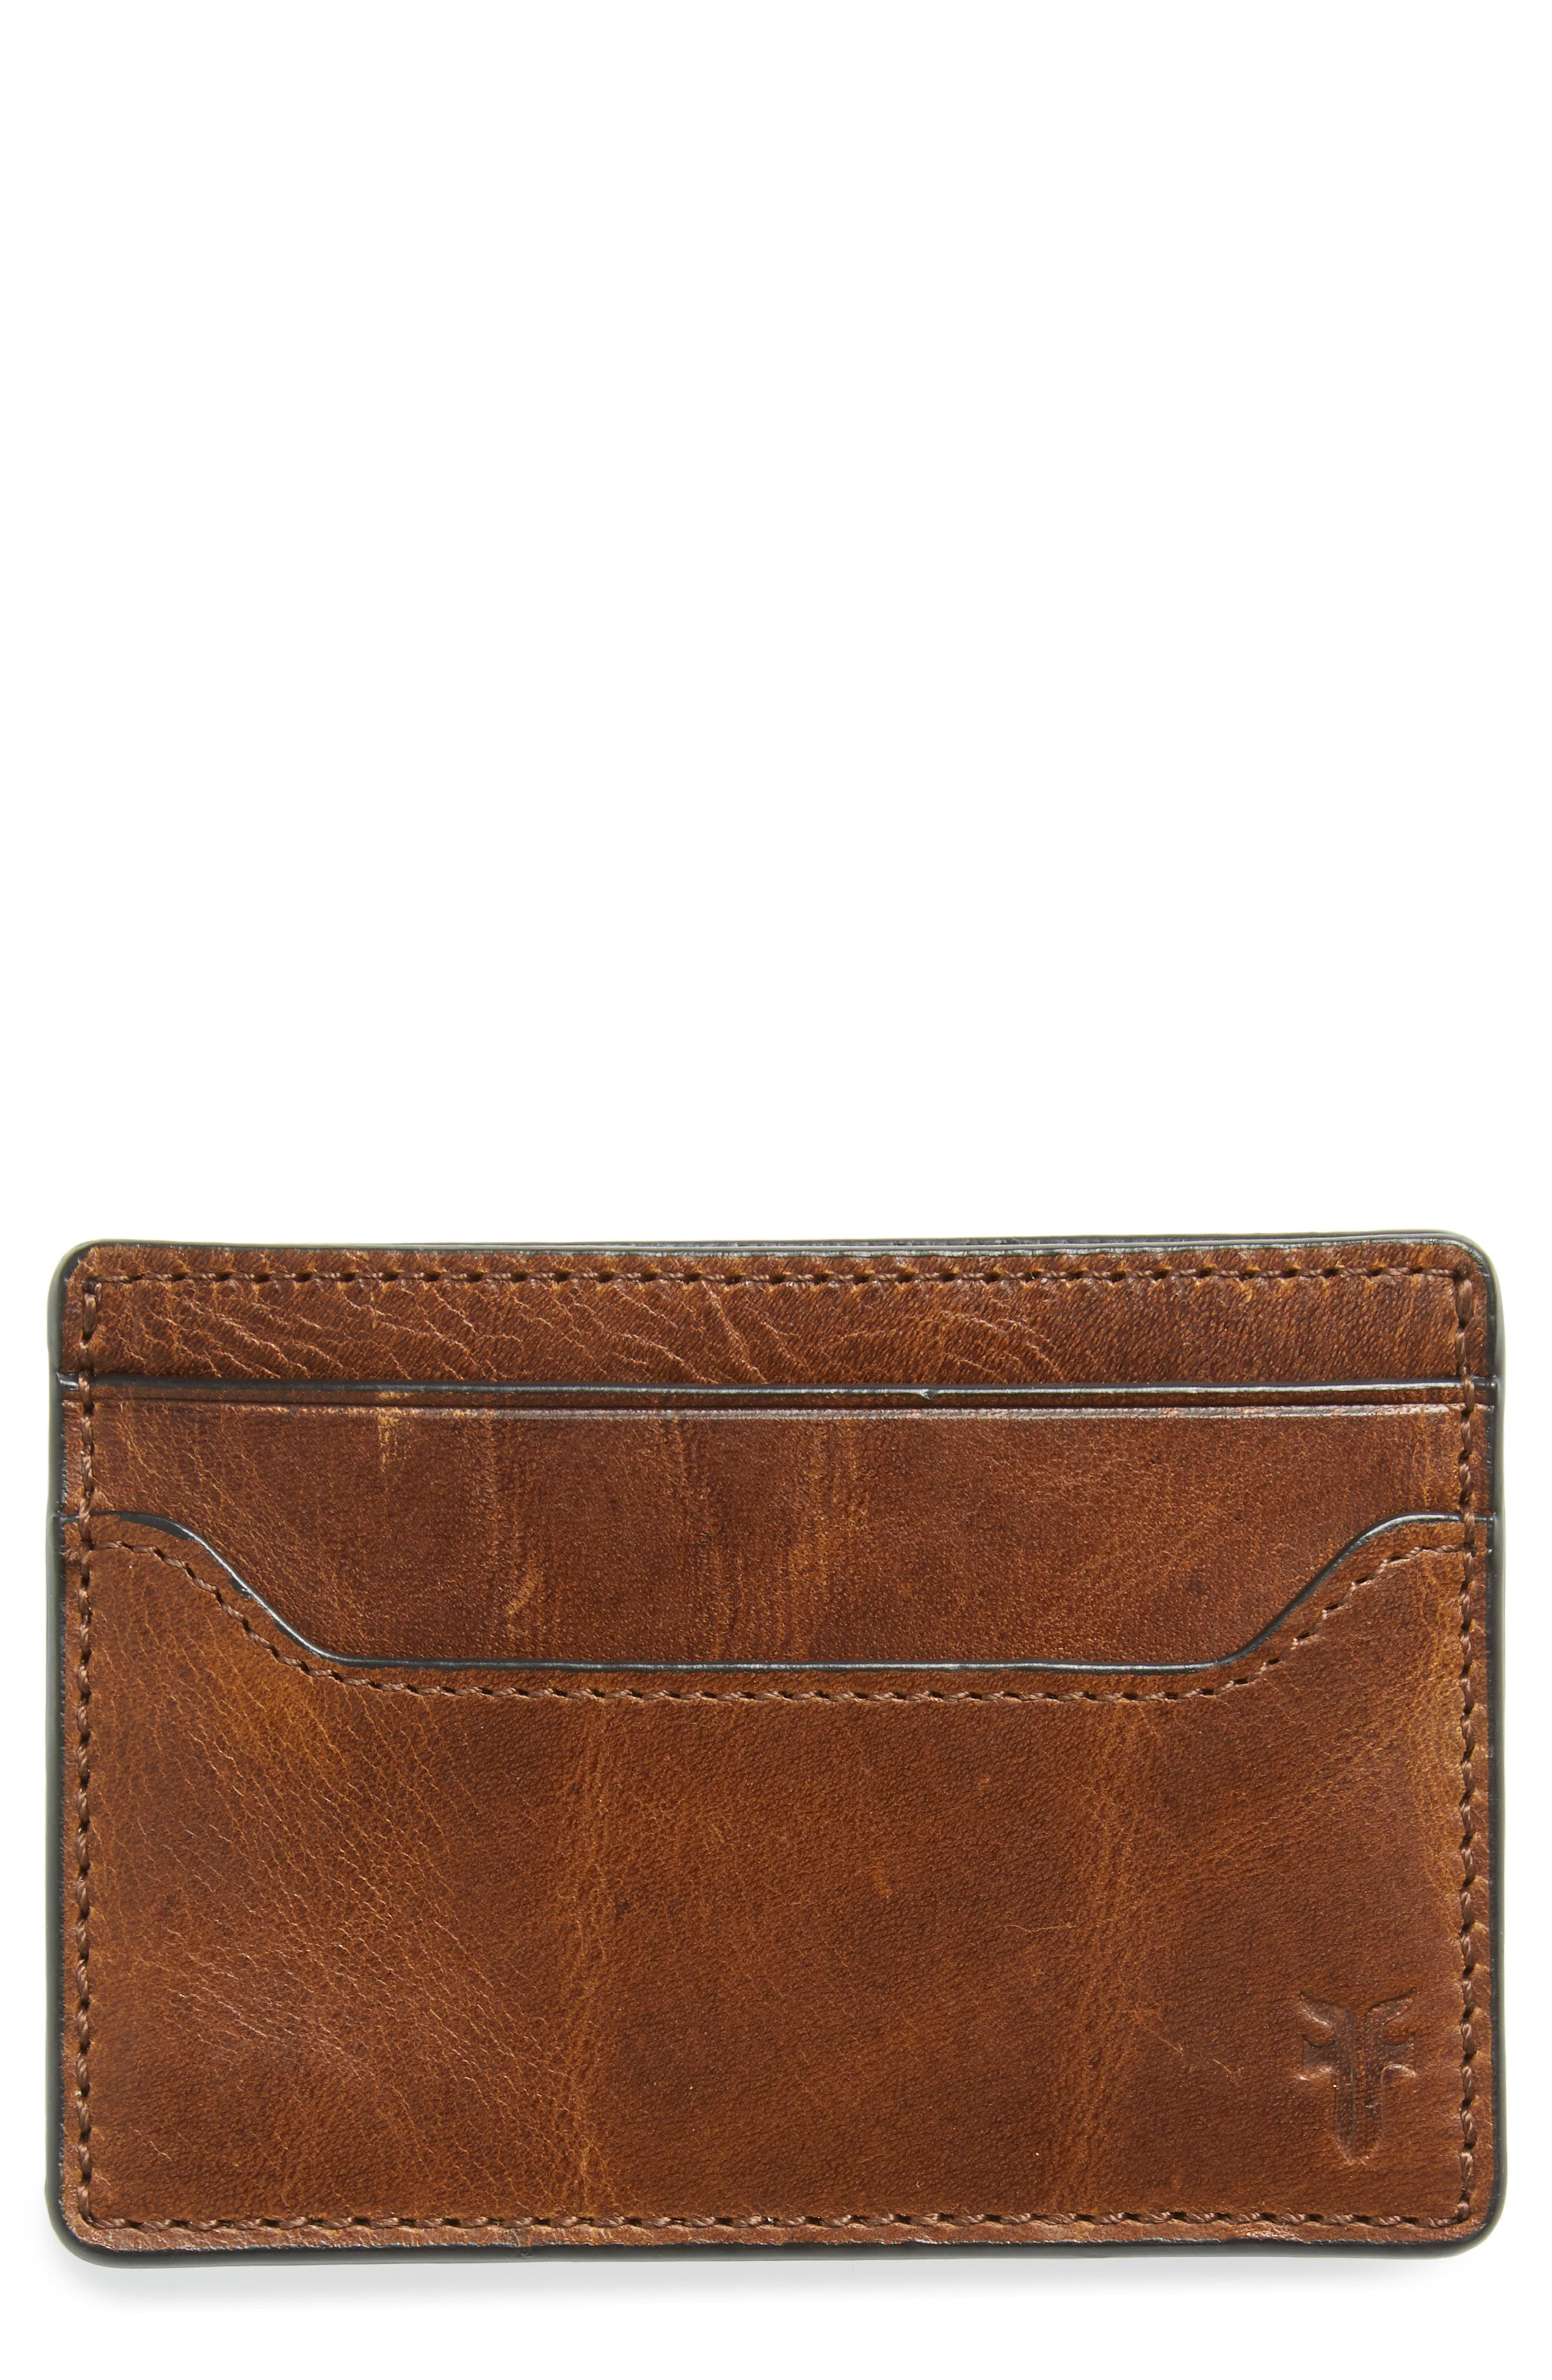 Logan Leather Money Clip Card Case,                             Main thumbnail 1, color,                             DARK BROWN